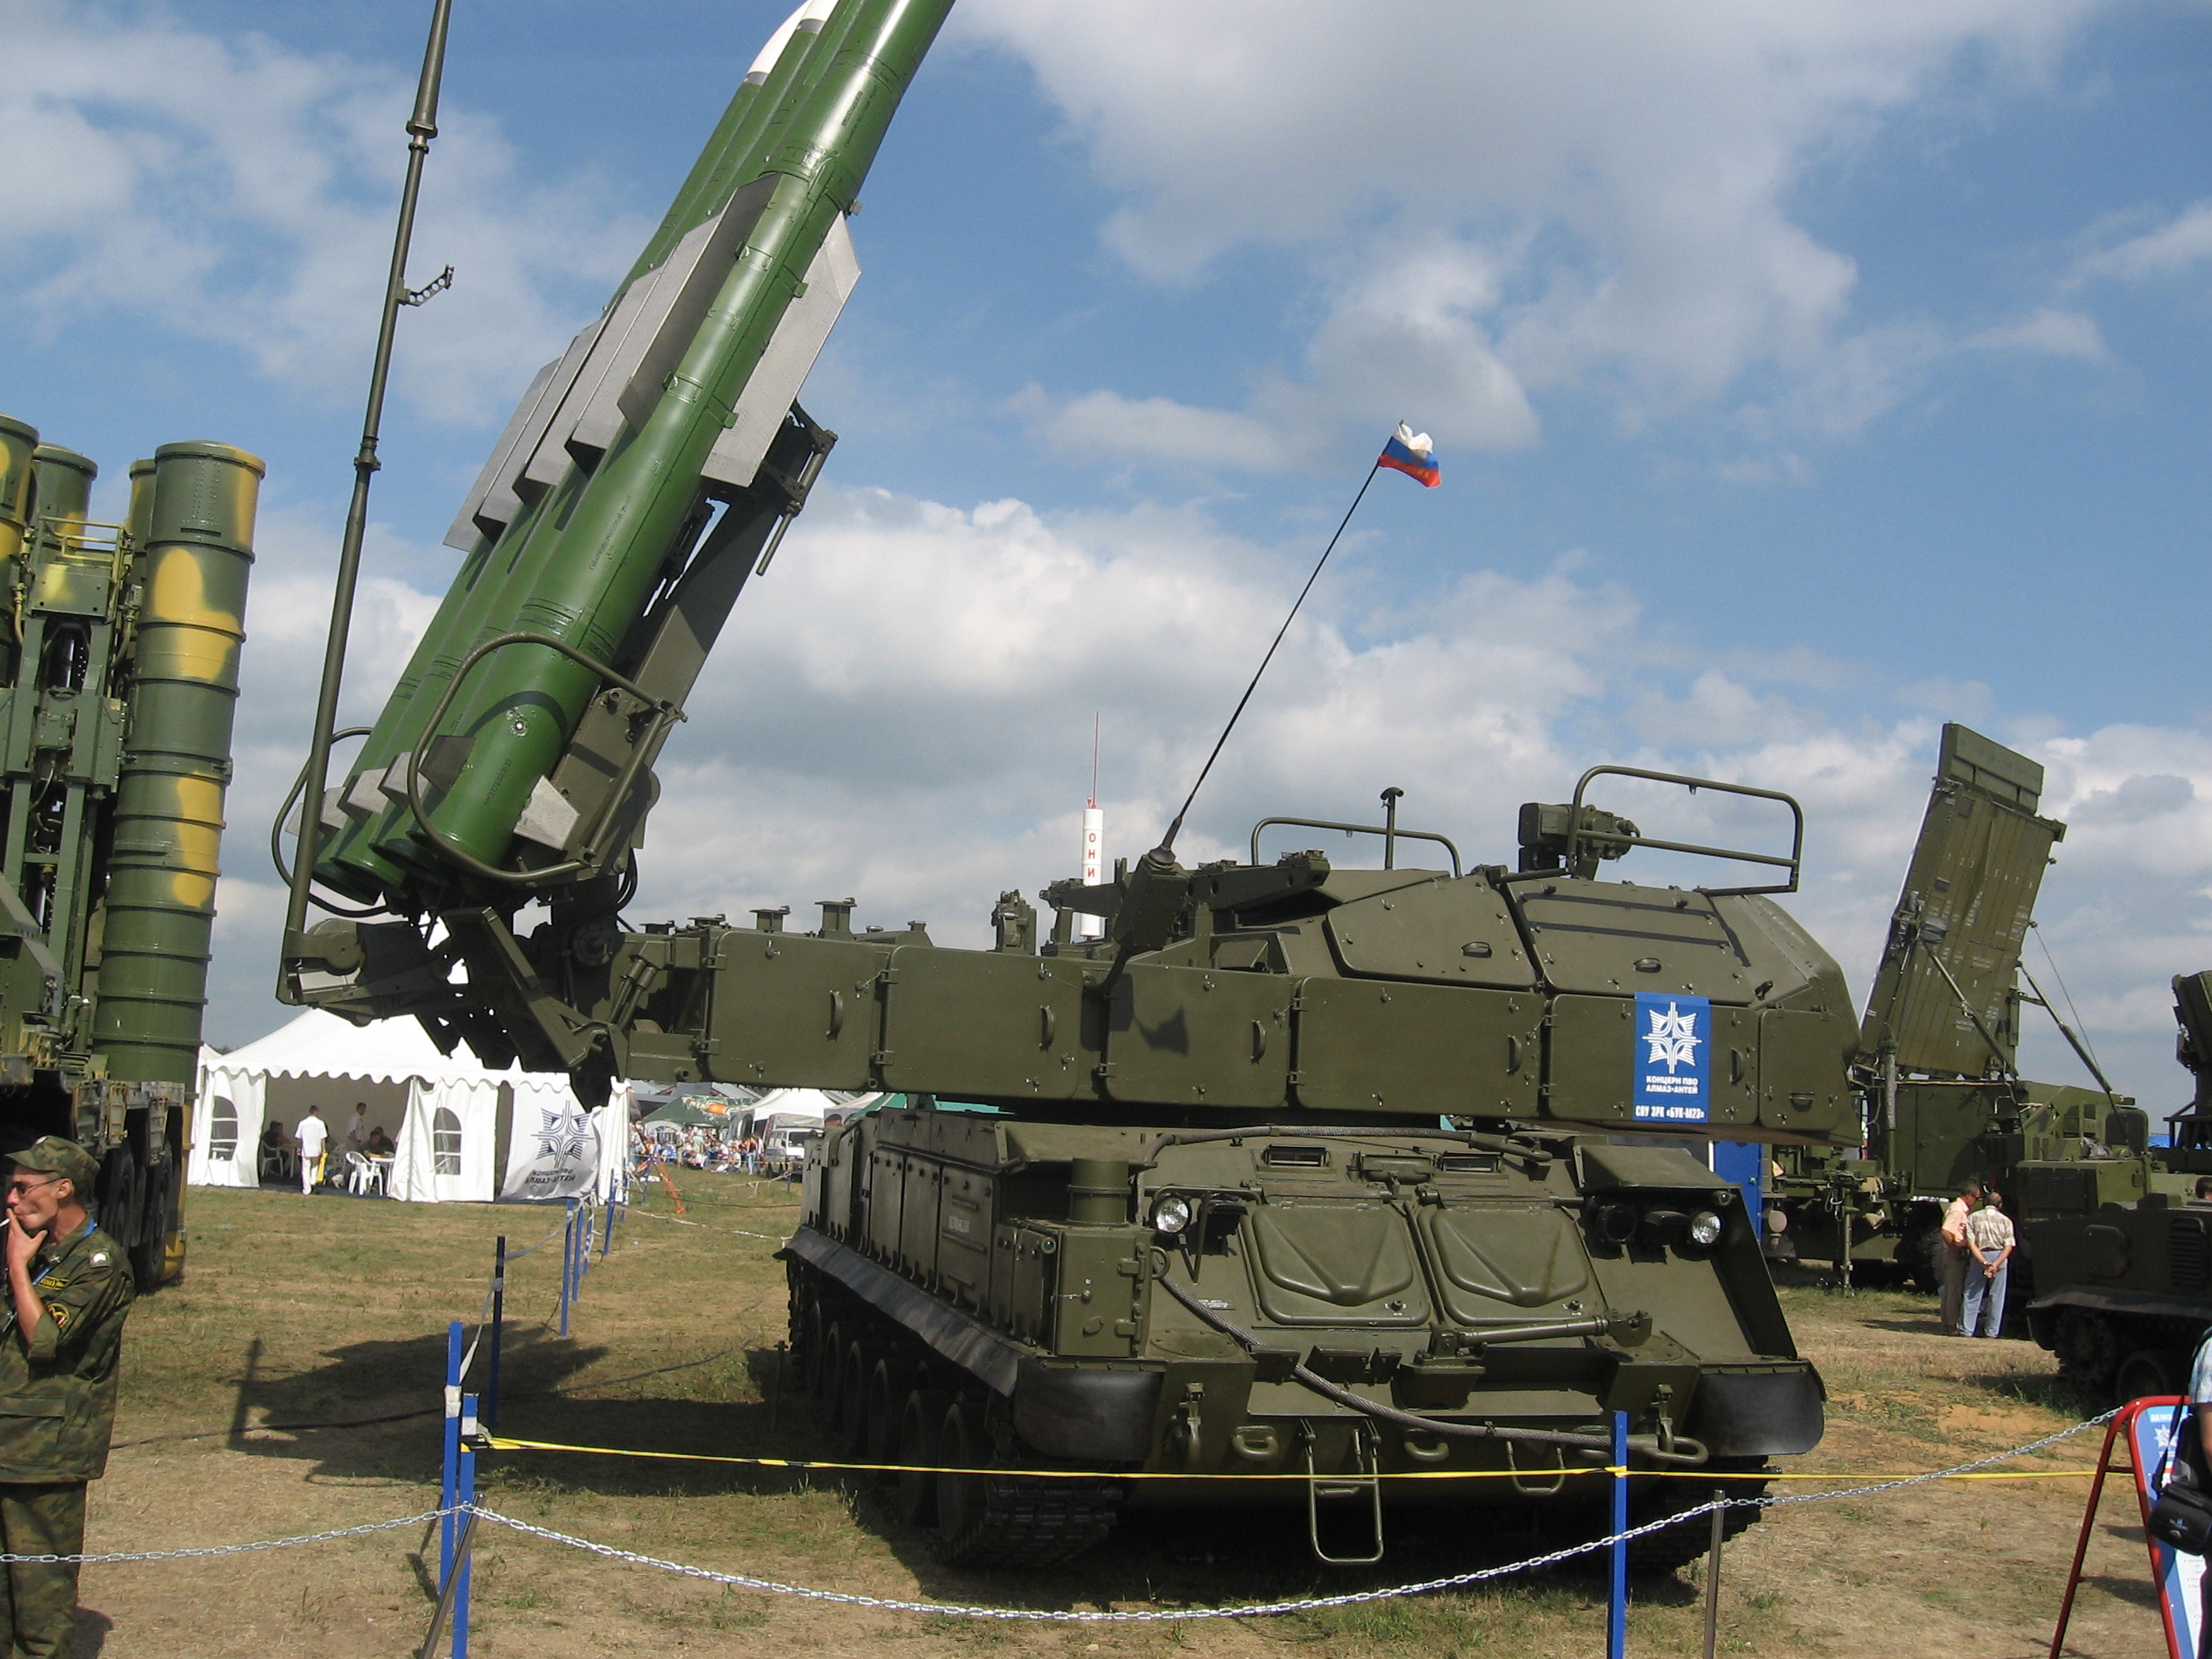 https://i0.wp.com/upload.wikimedia.org/wikipedia/commons/c/c4/Buk-M2-MAKS-2007.jpg